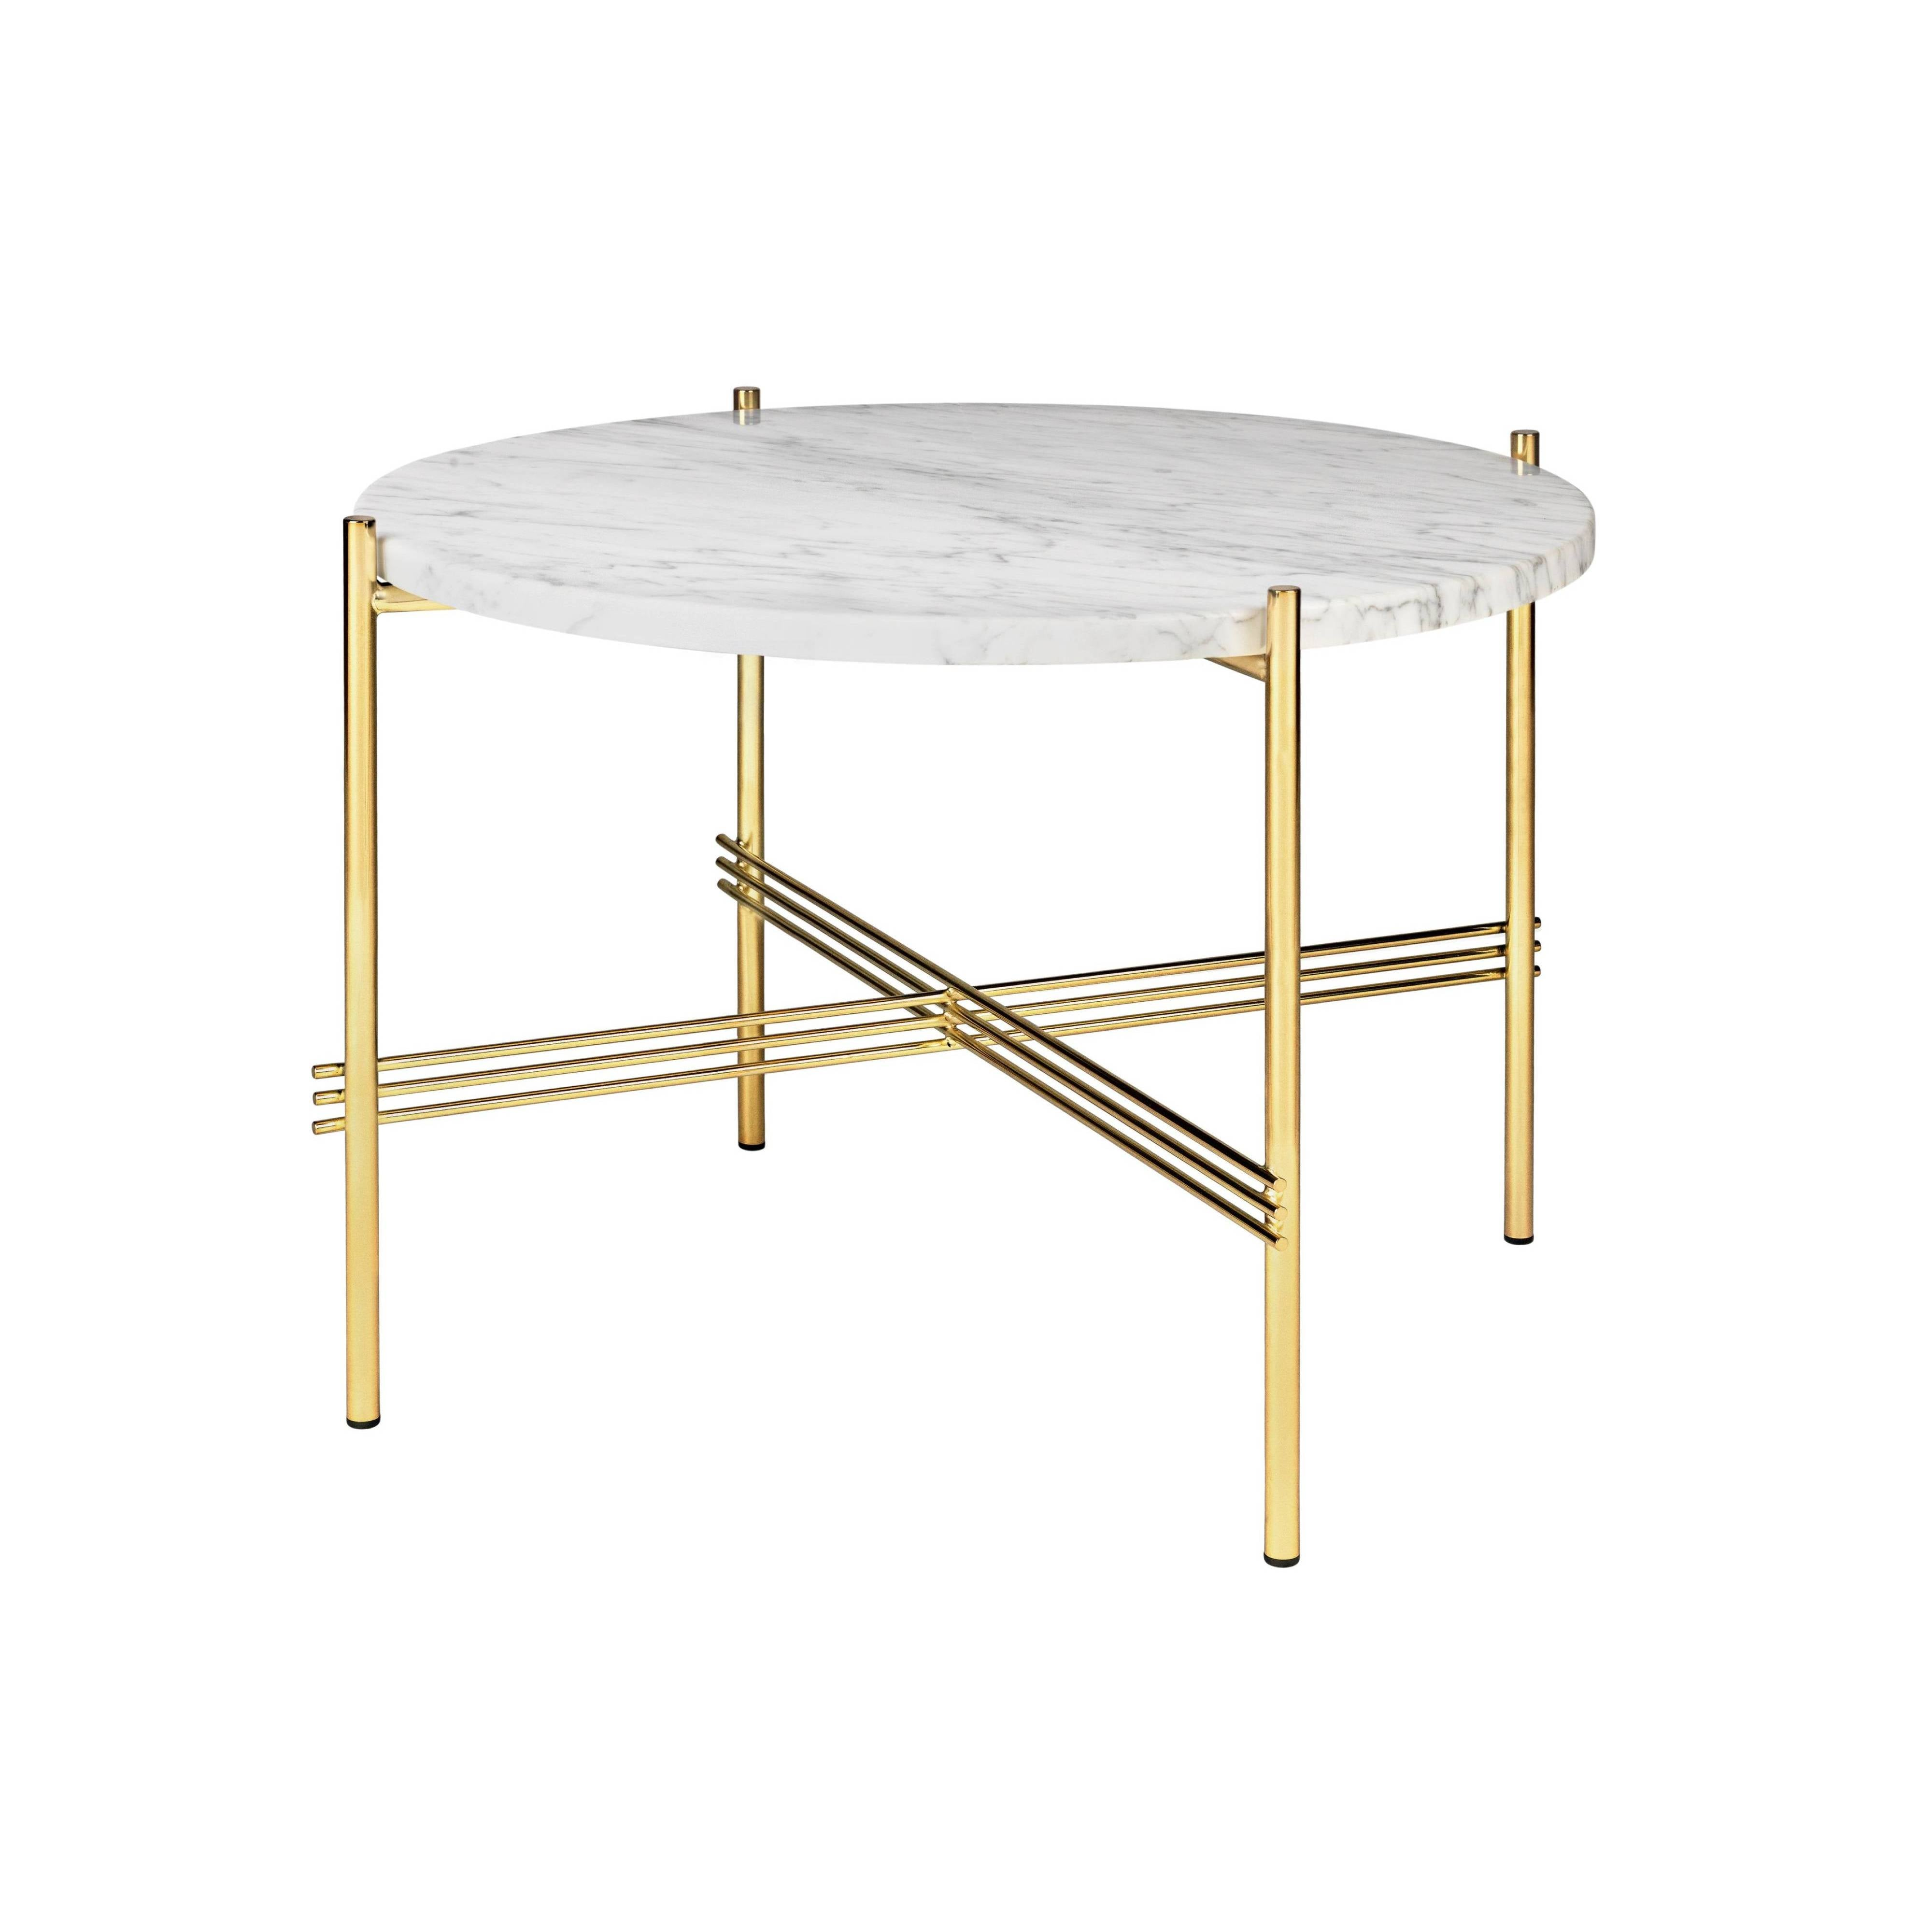 TS Round Coffee Table: Small + Brass Base + White Carrara Marble